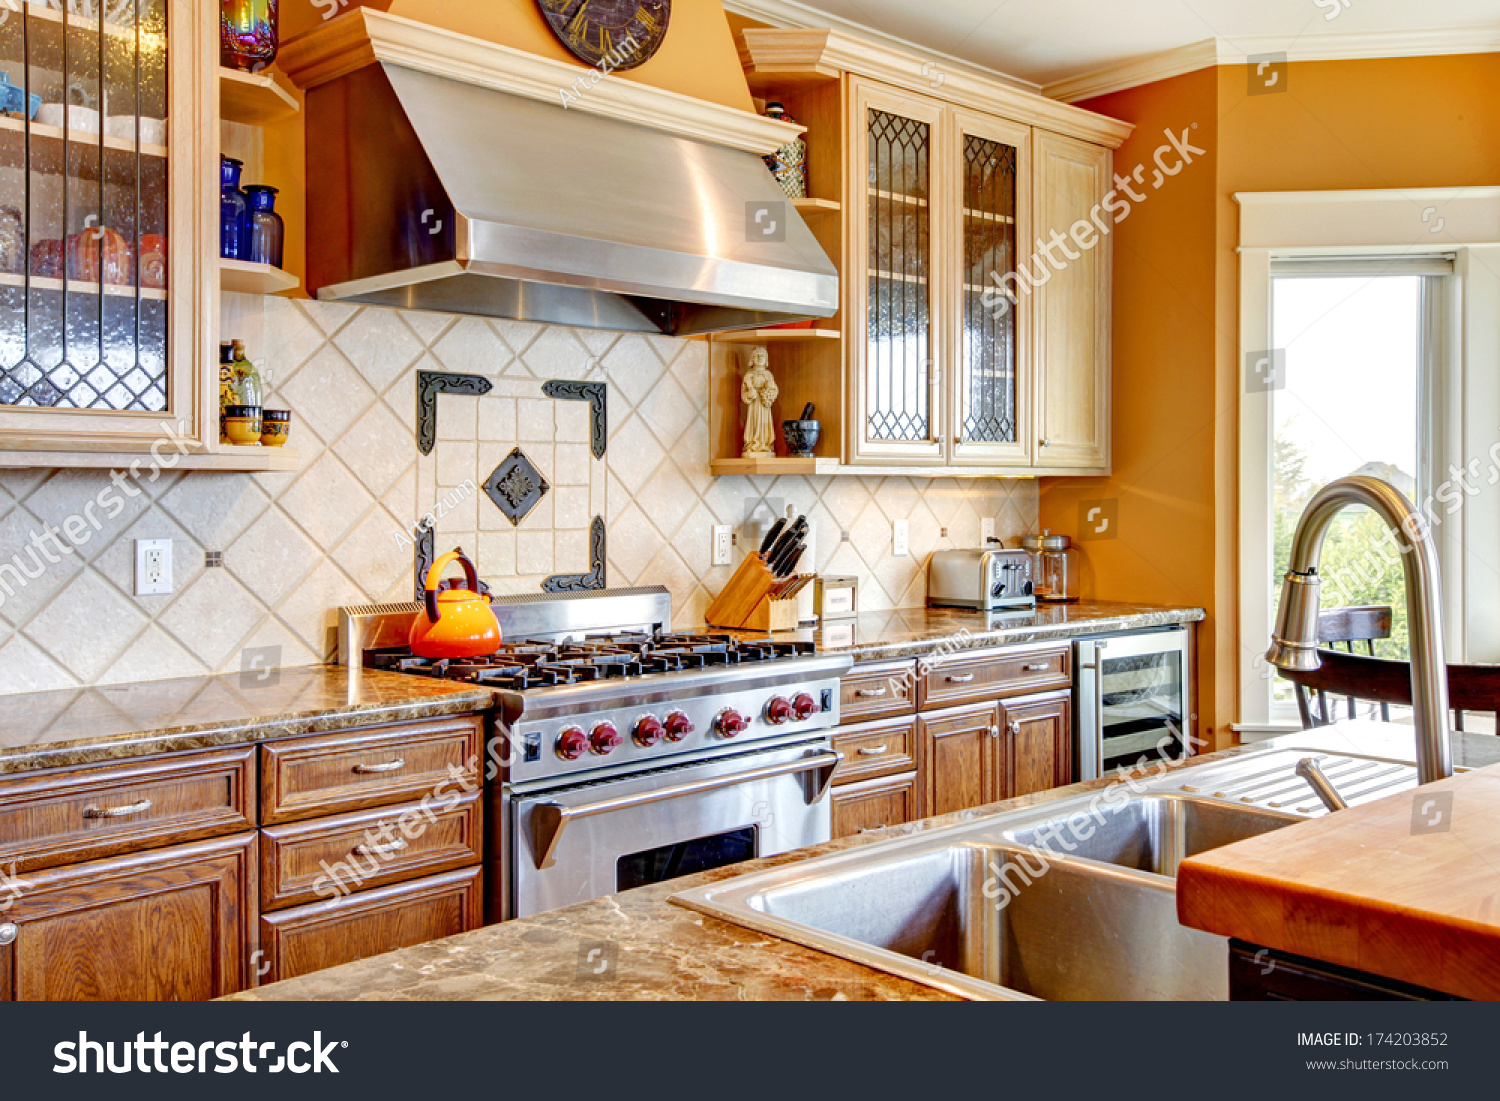 Yellow Tones Kitchen With Tile Decorated Back Plash